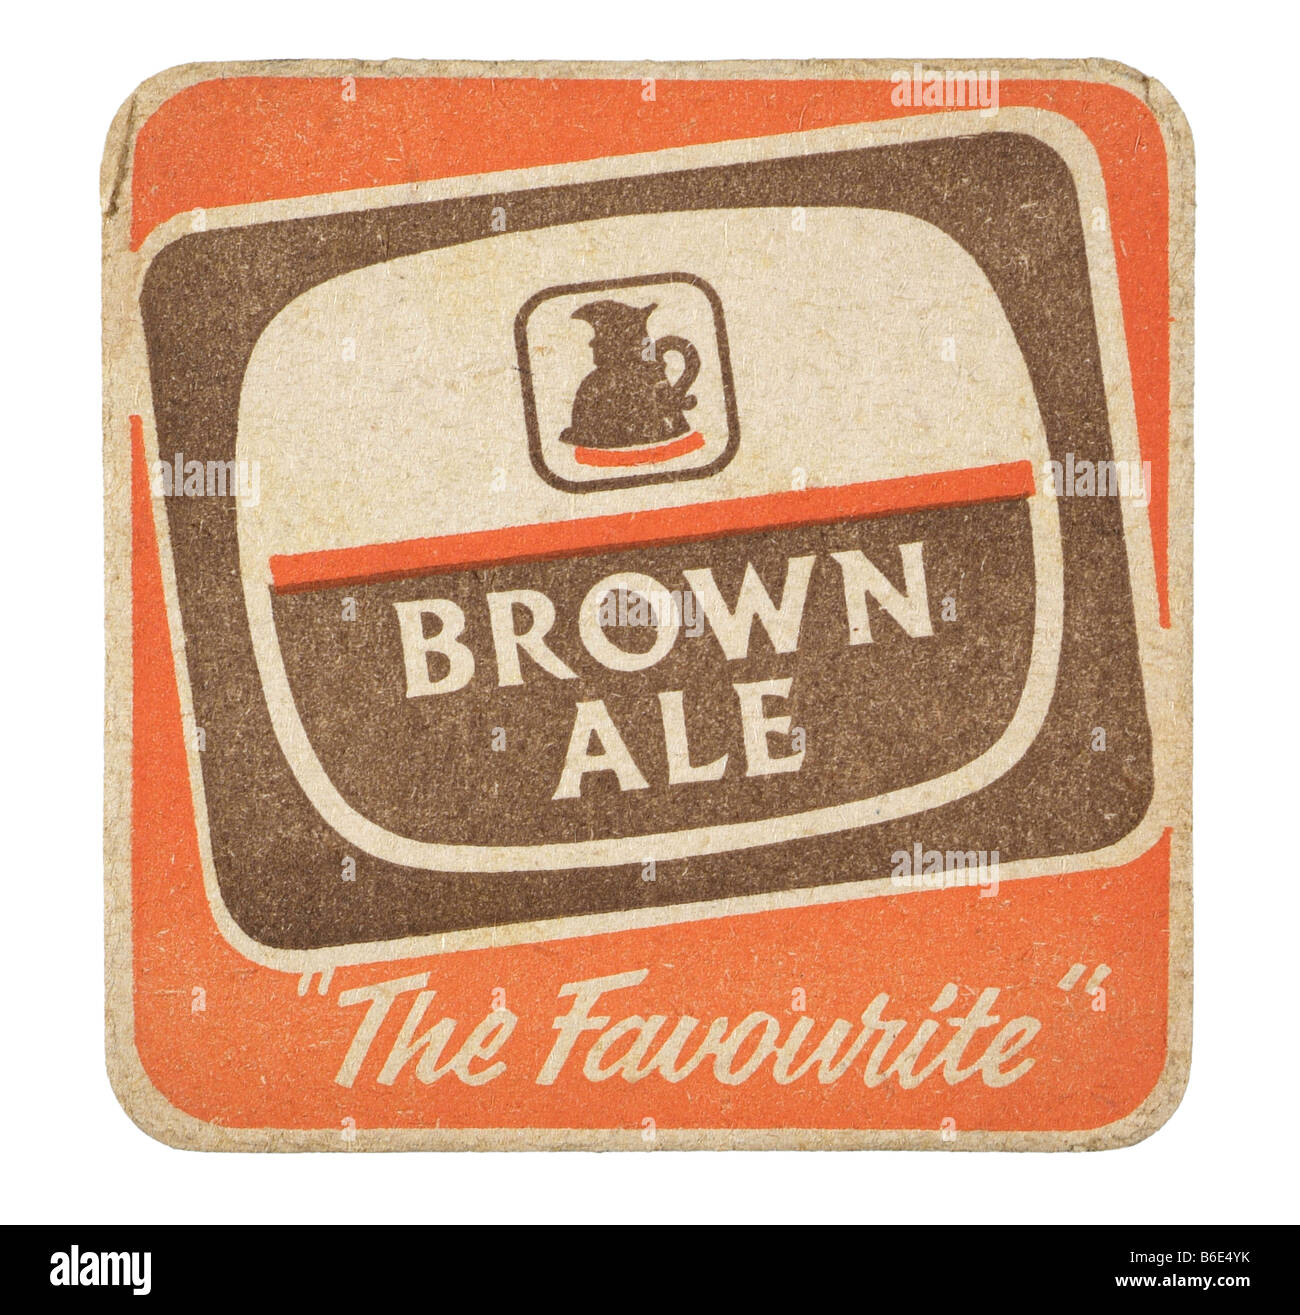 brown ale the favourite - Stock Image